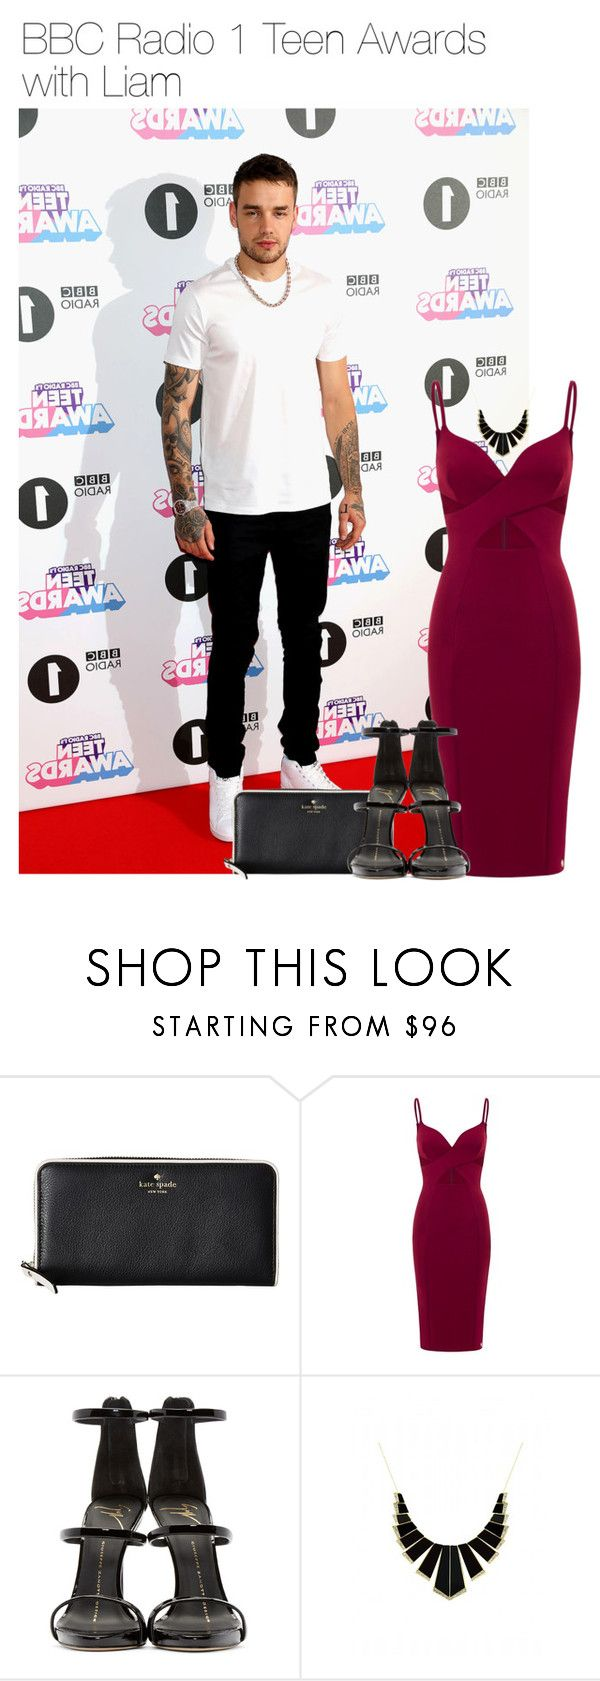 """""""BBC Radio 1 Teen Awards with Liam"""" by leftsouls ❤ liked on Polyvore featuring Kate Spade, Aloura London, Giuseppe Zanotti and House of Harlow 1960"""